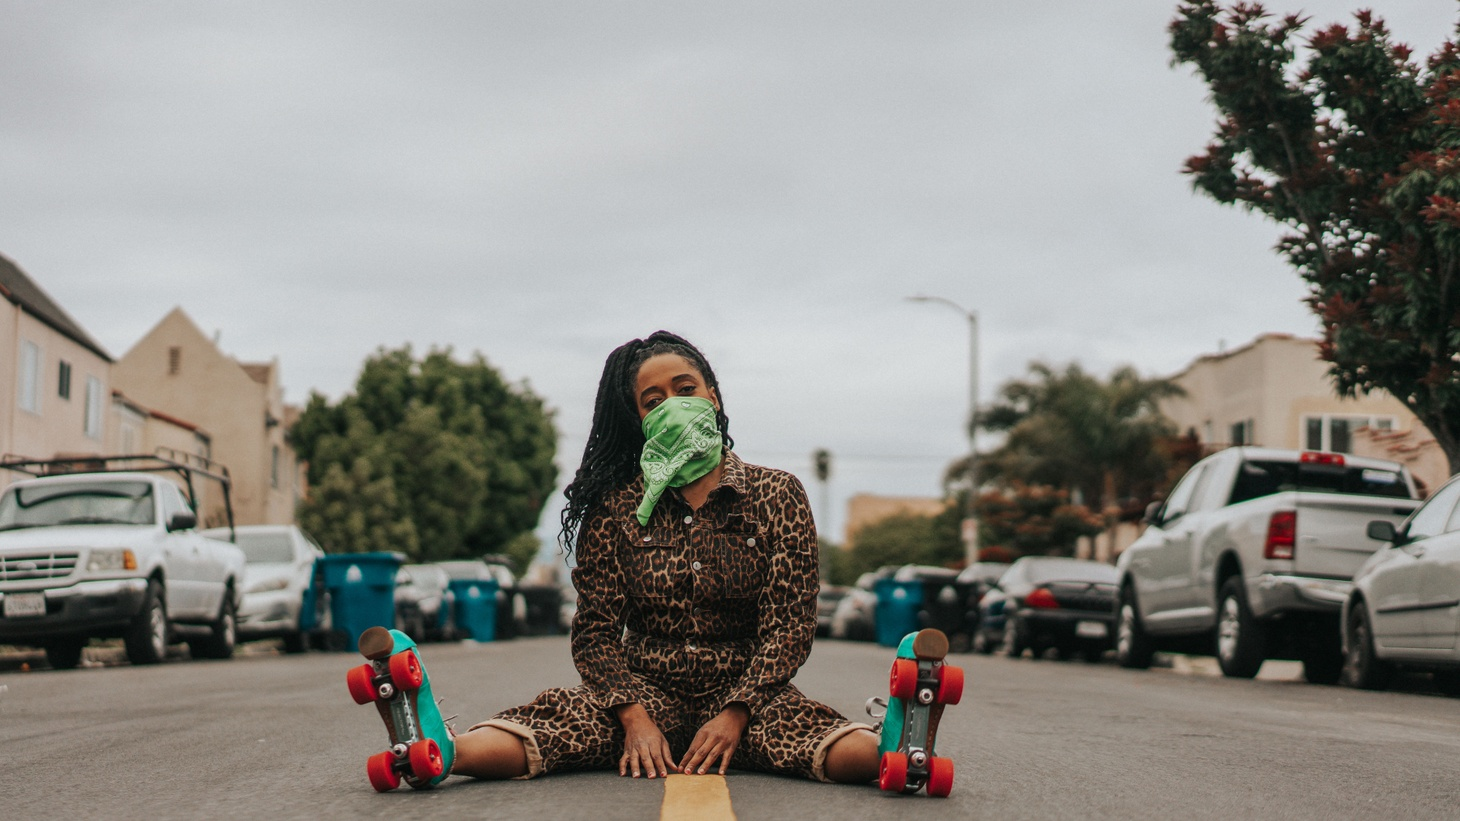 A roller skater wears a face covering during the coronavirus pandemic.